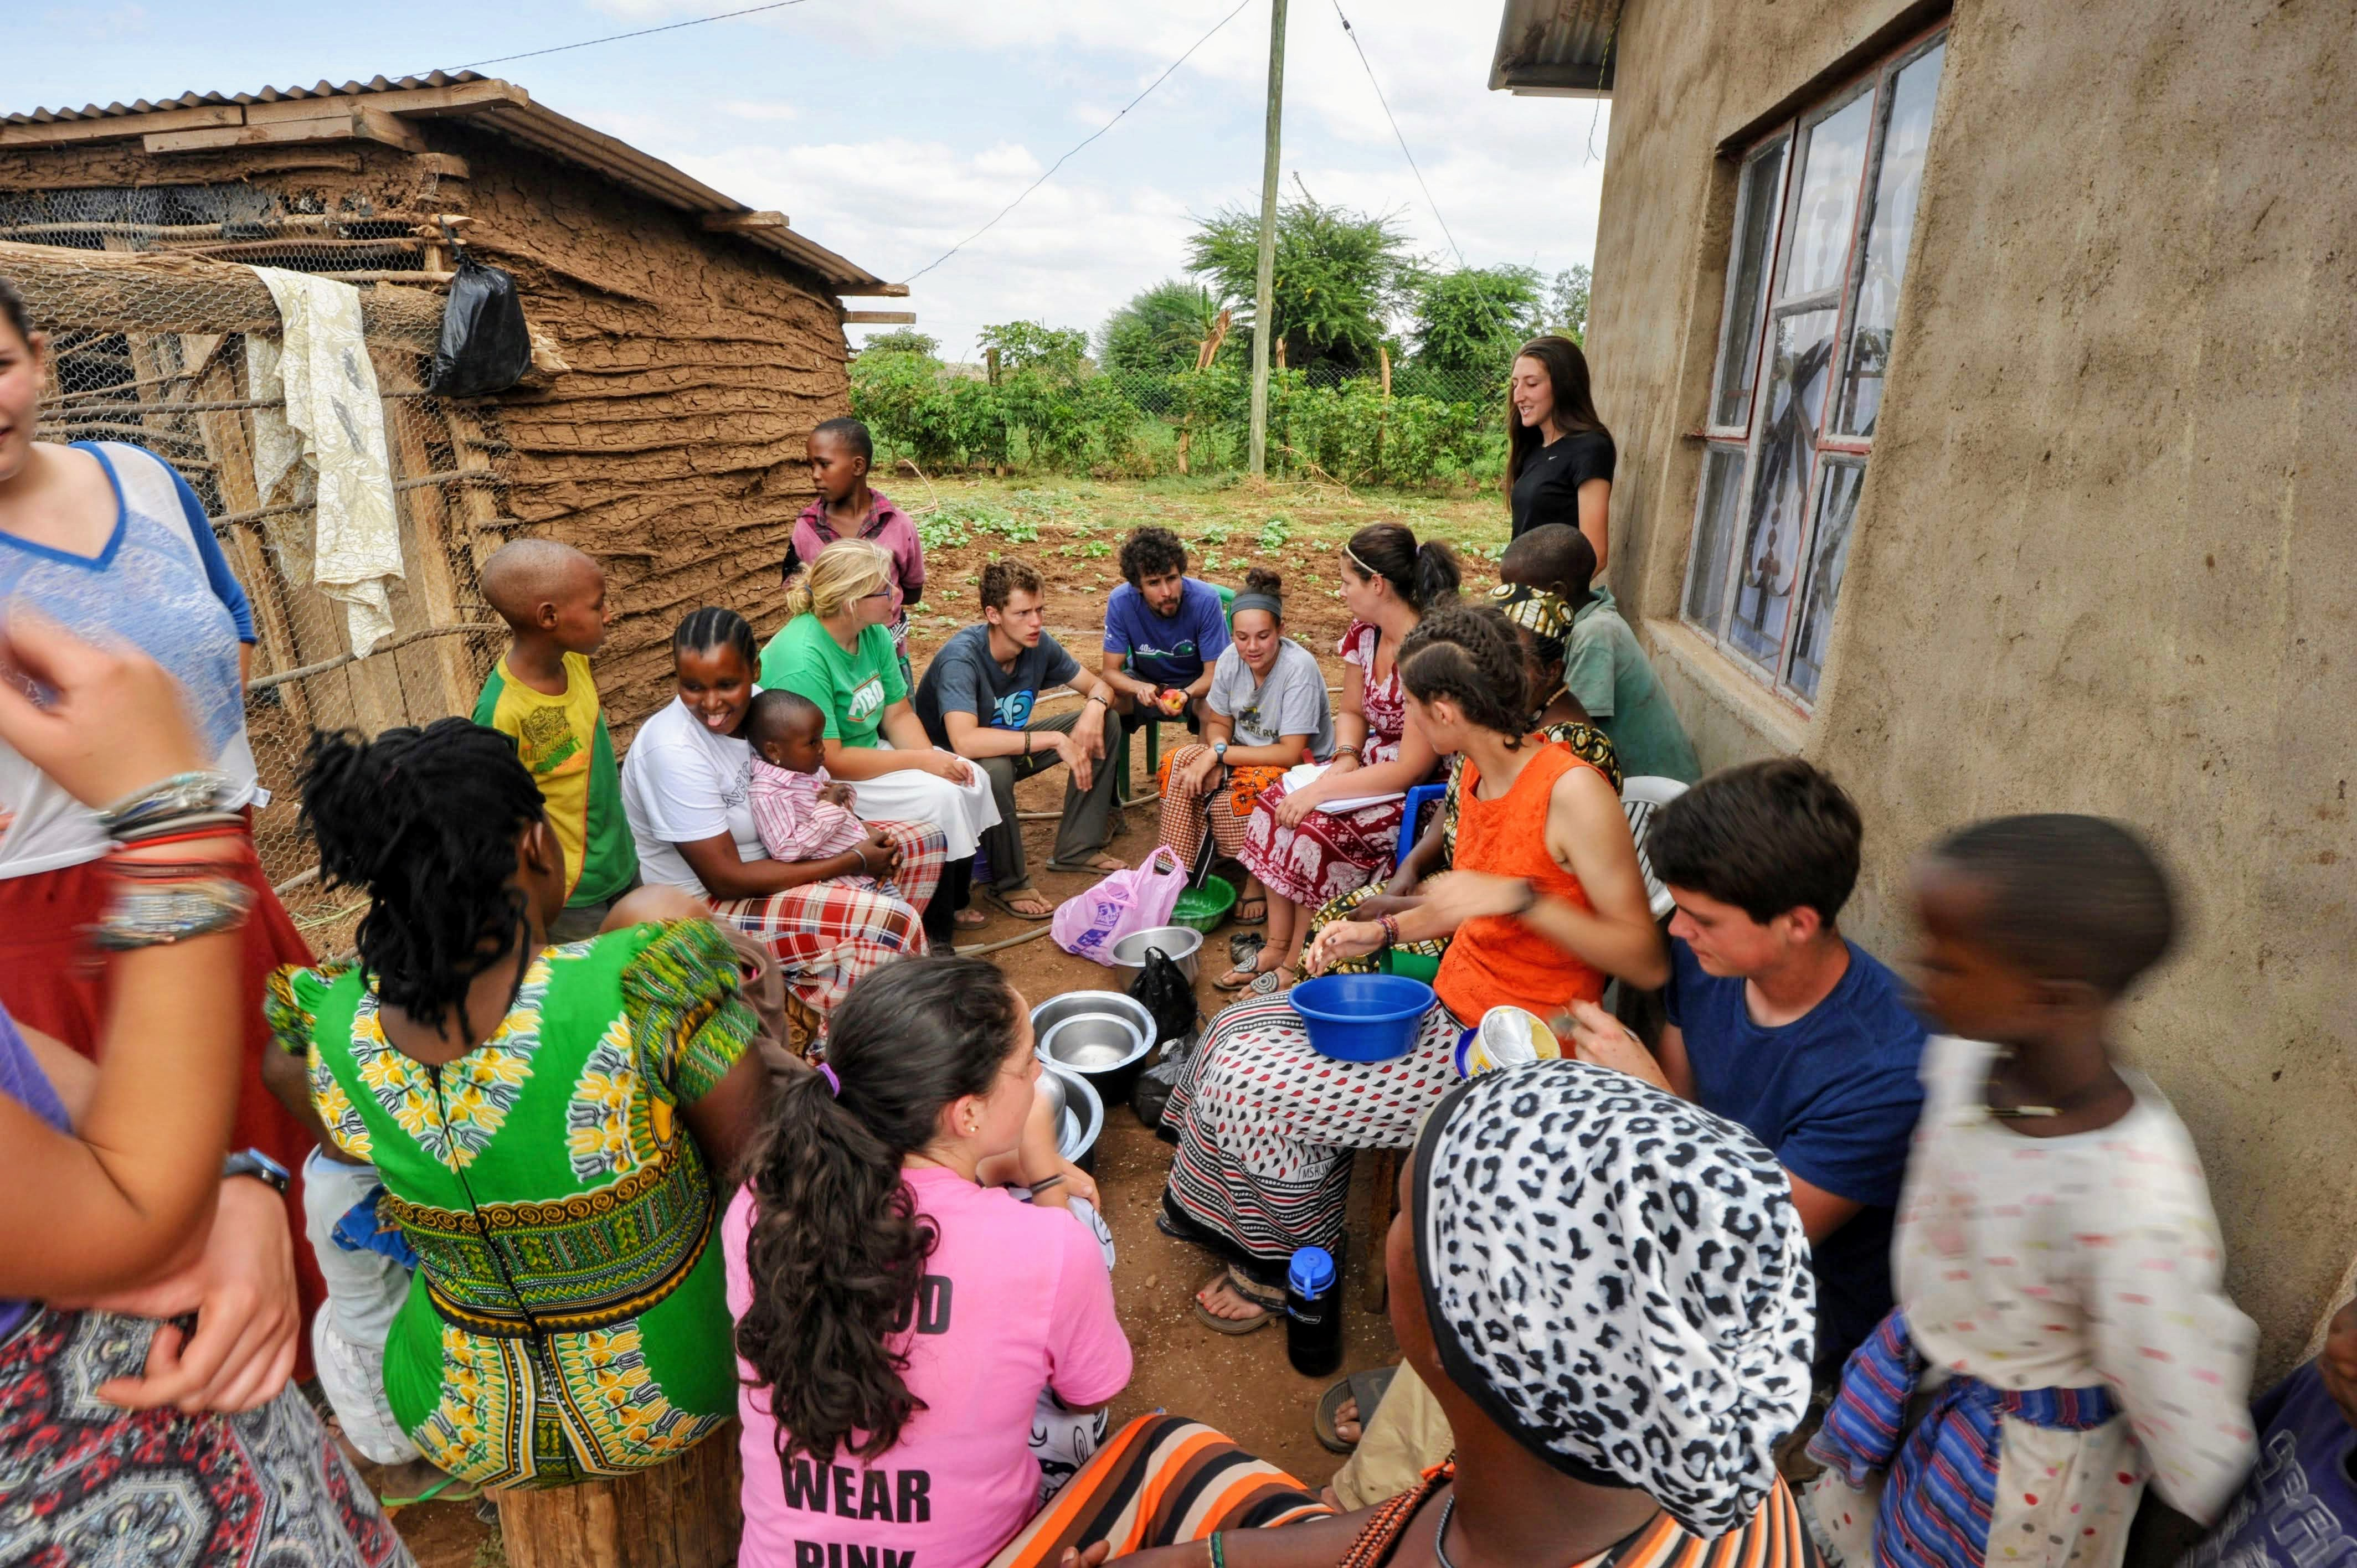 Global Routes: Service and Immersion in Tanzania